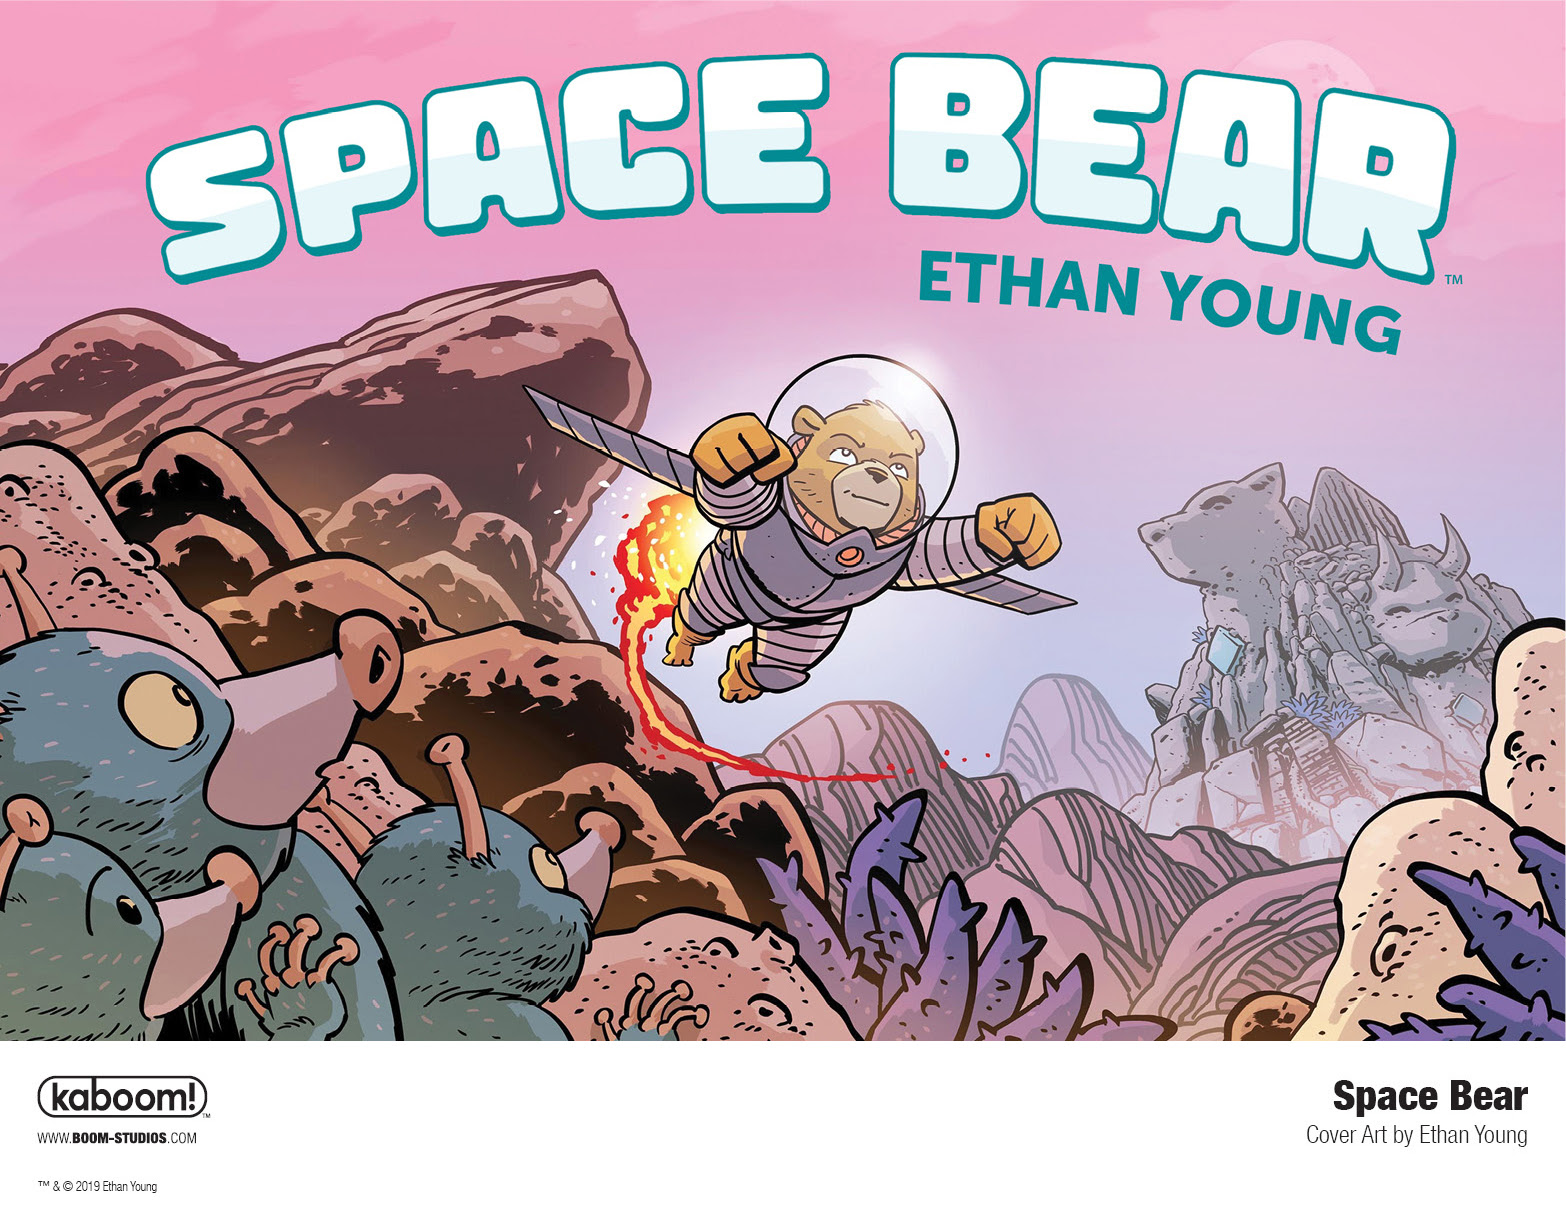 BOOM! Studios Vows to Put a Bear in Space by 2020